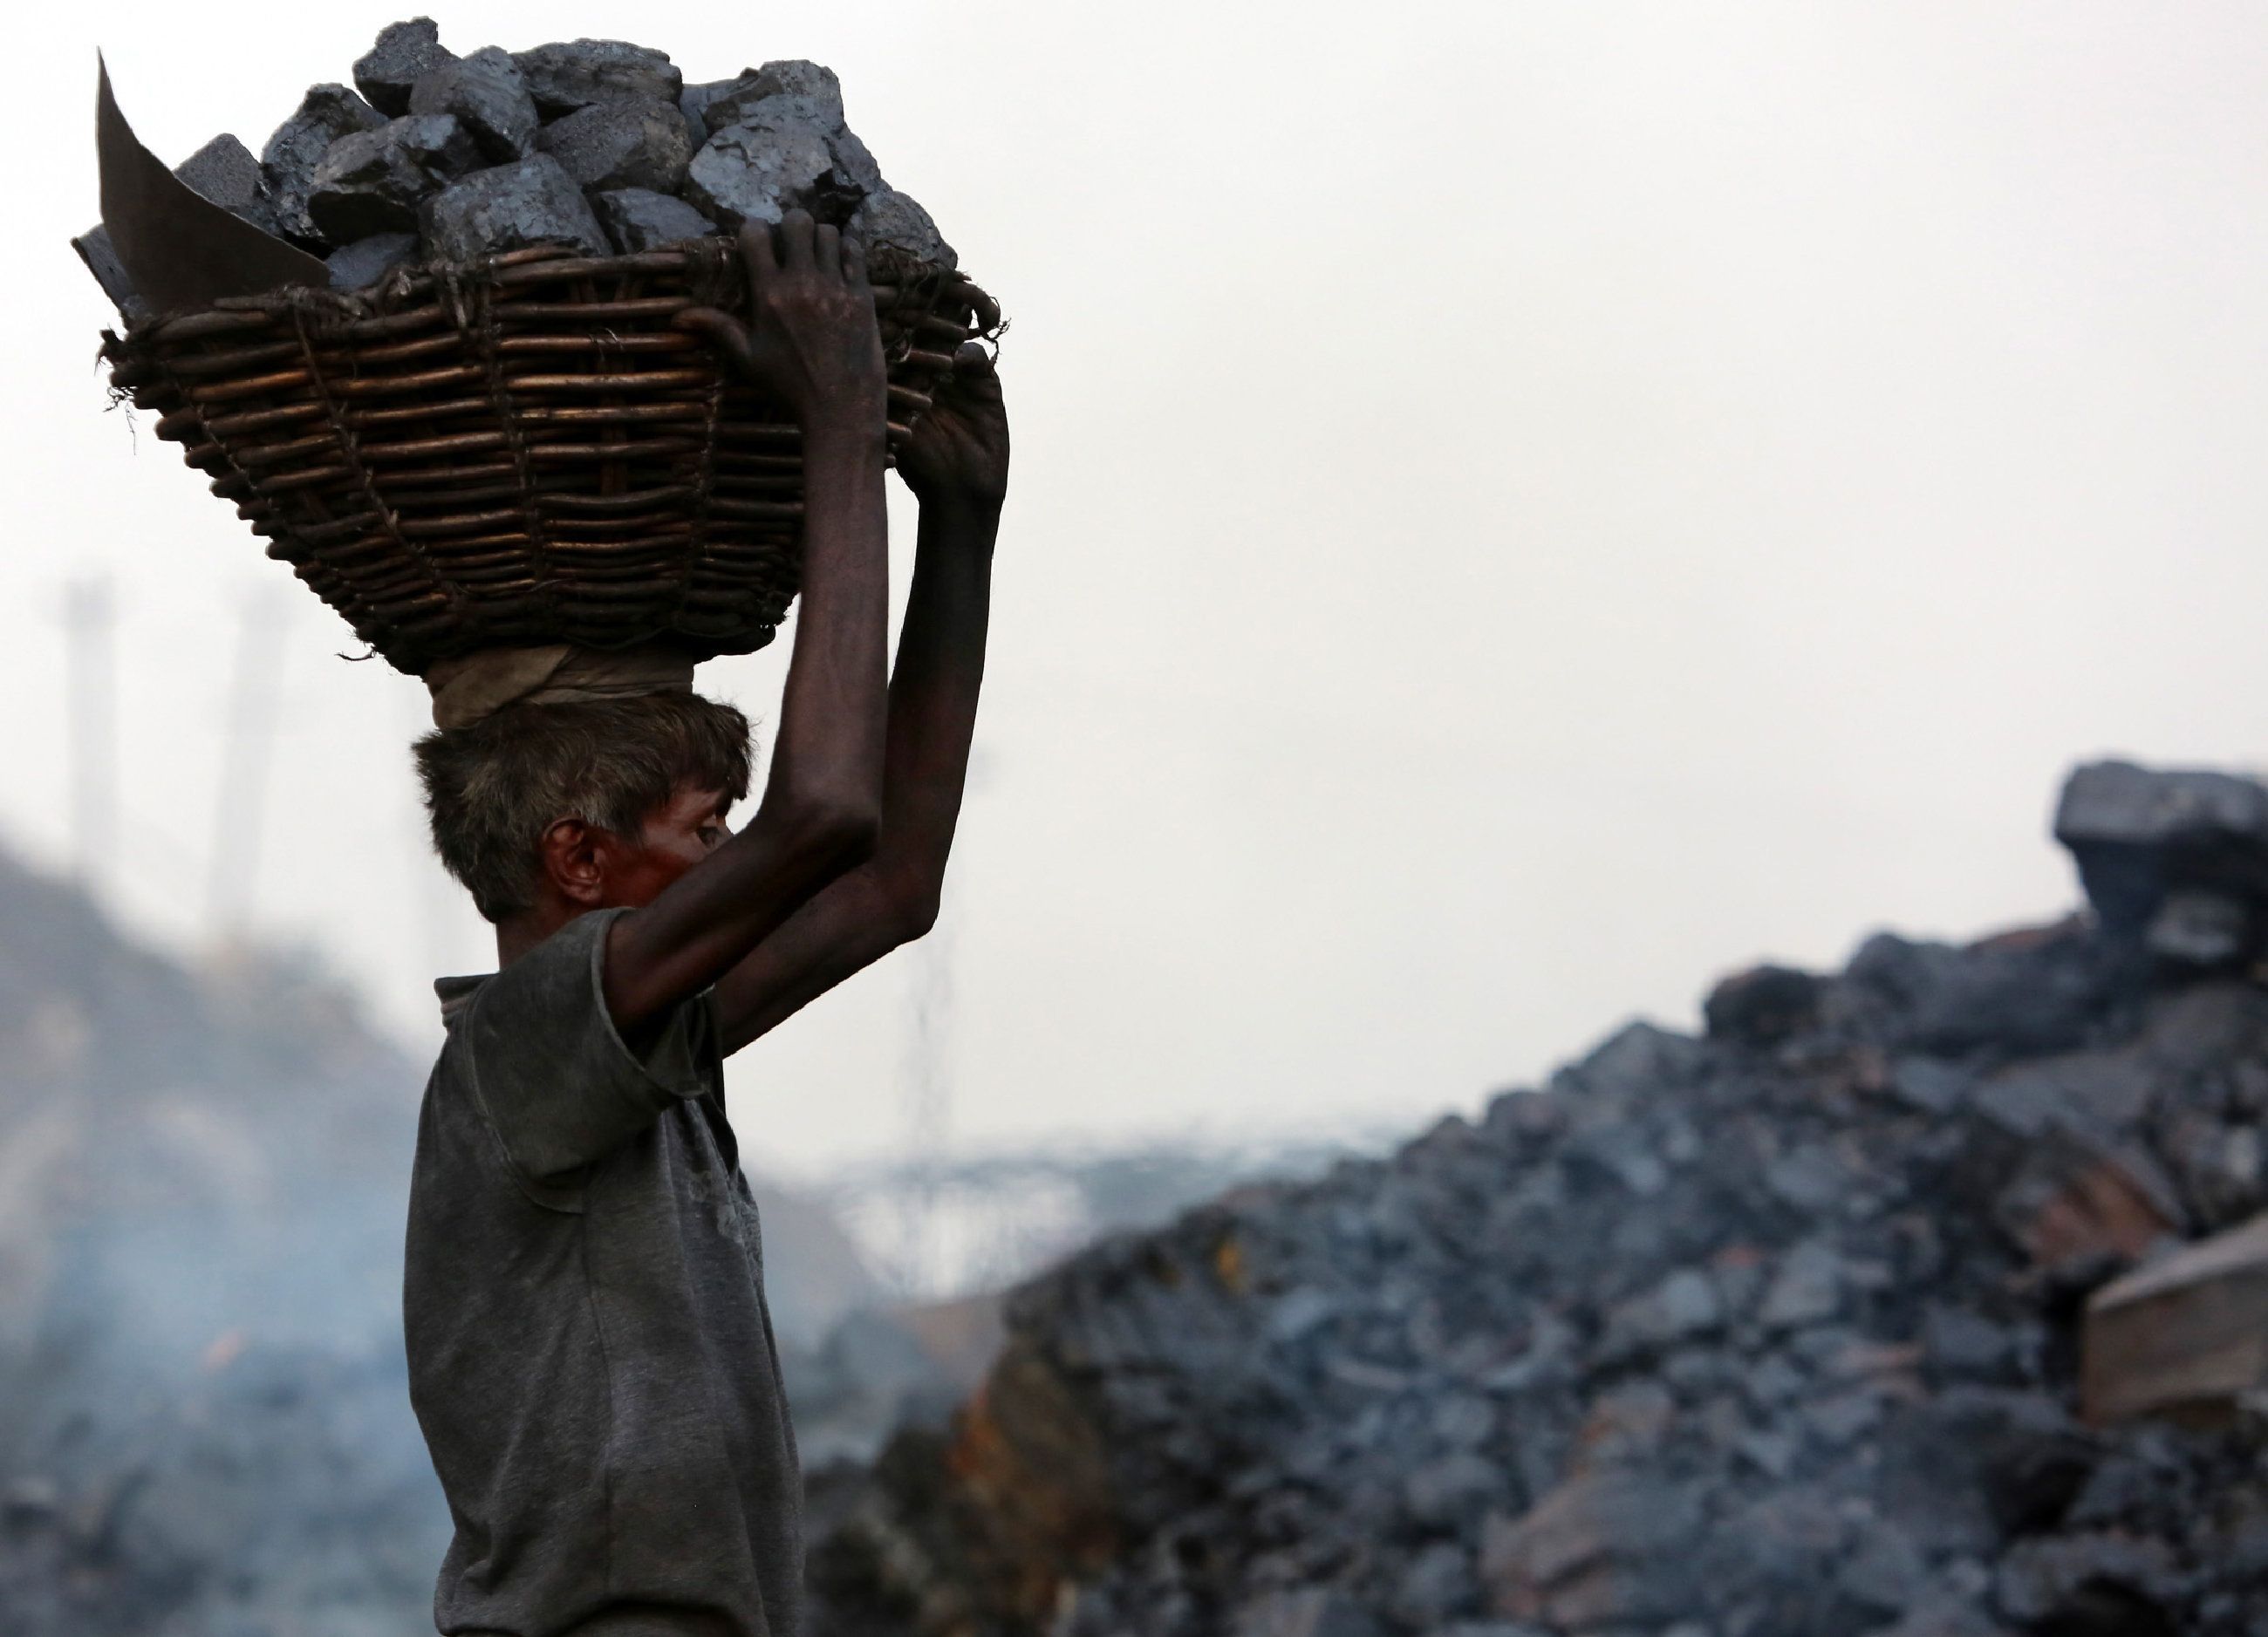 World's Largest Coal Company Closes 37 Of Its Mines Thanks To Green